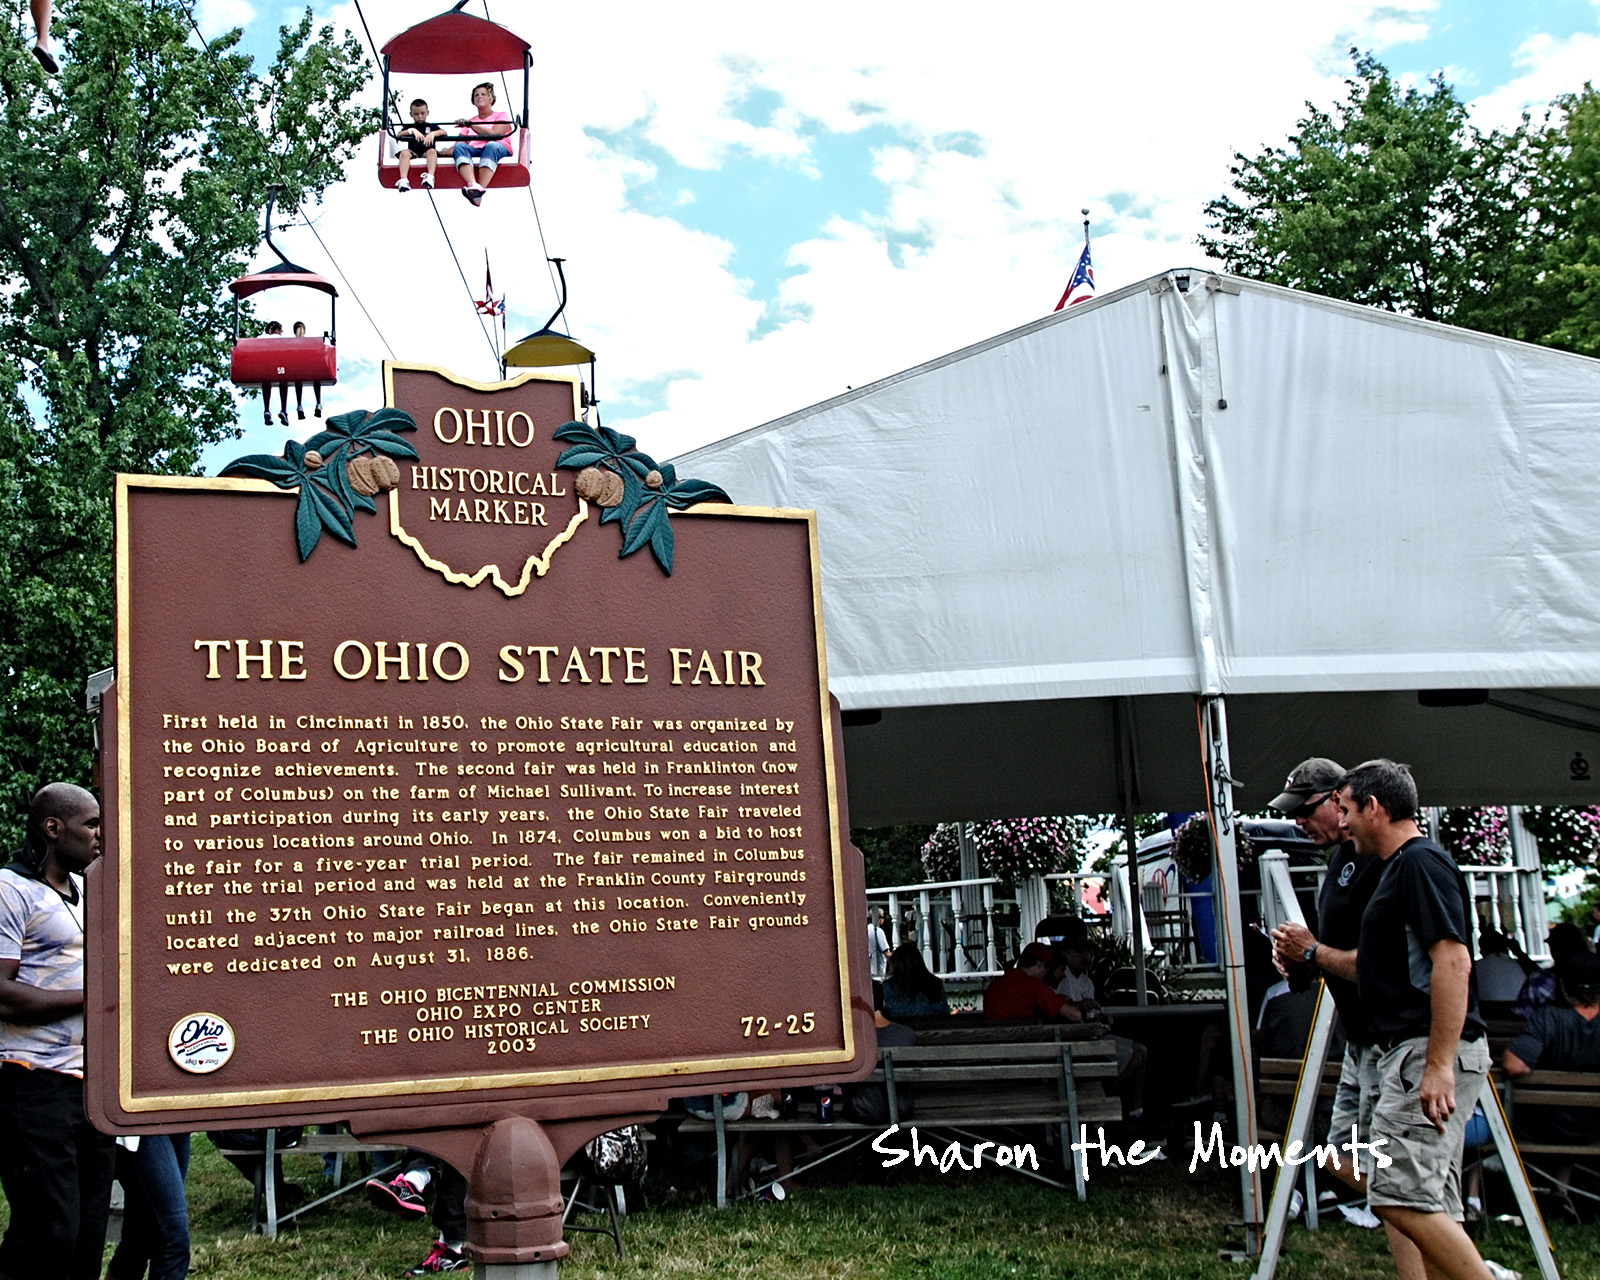 Ohio State Fair Historical Marker Fond Memories|Sharon the Moments blog